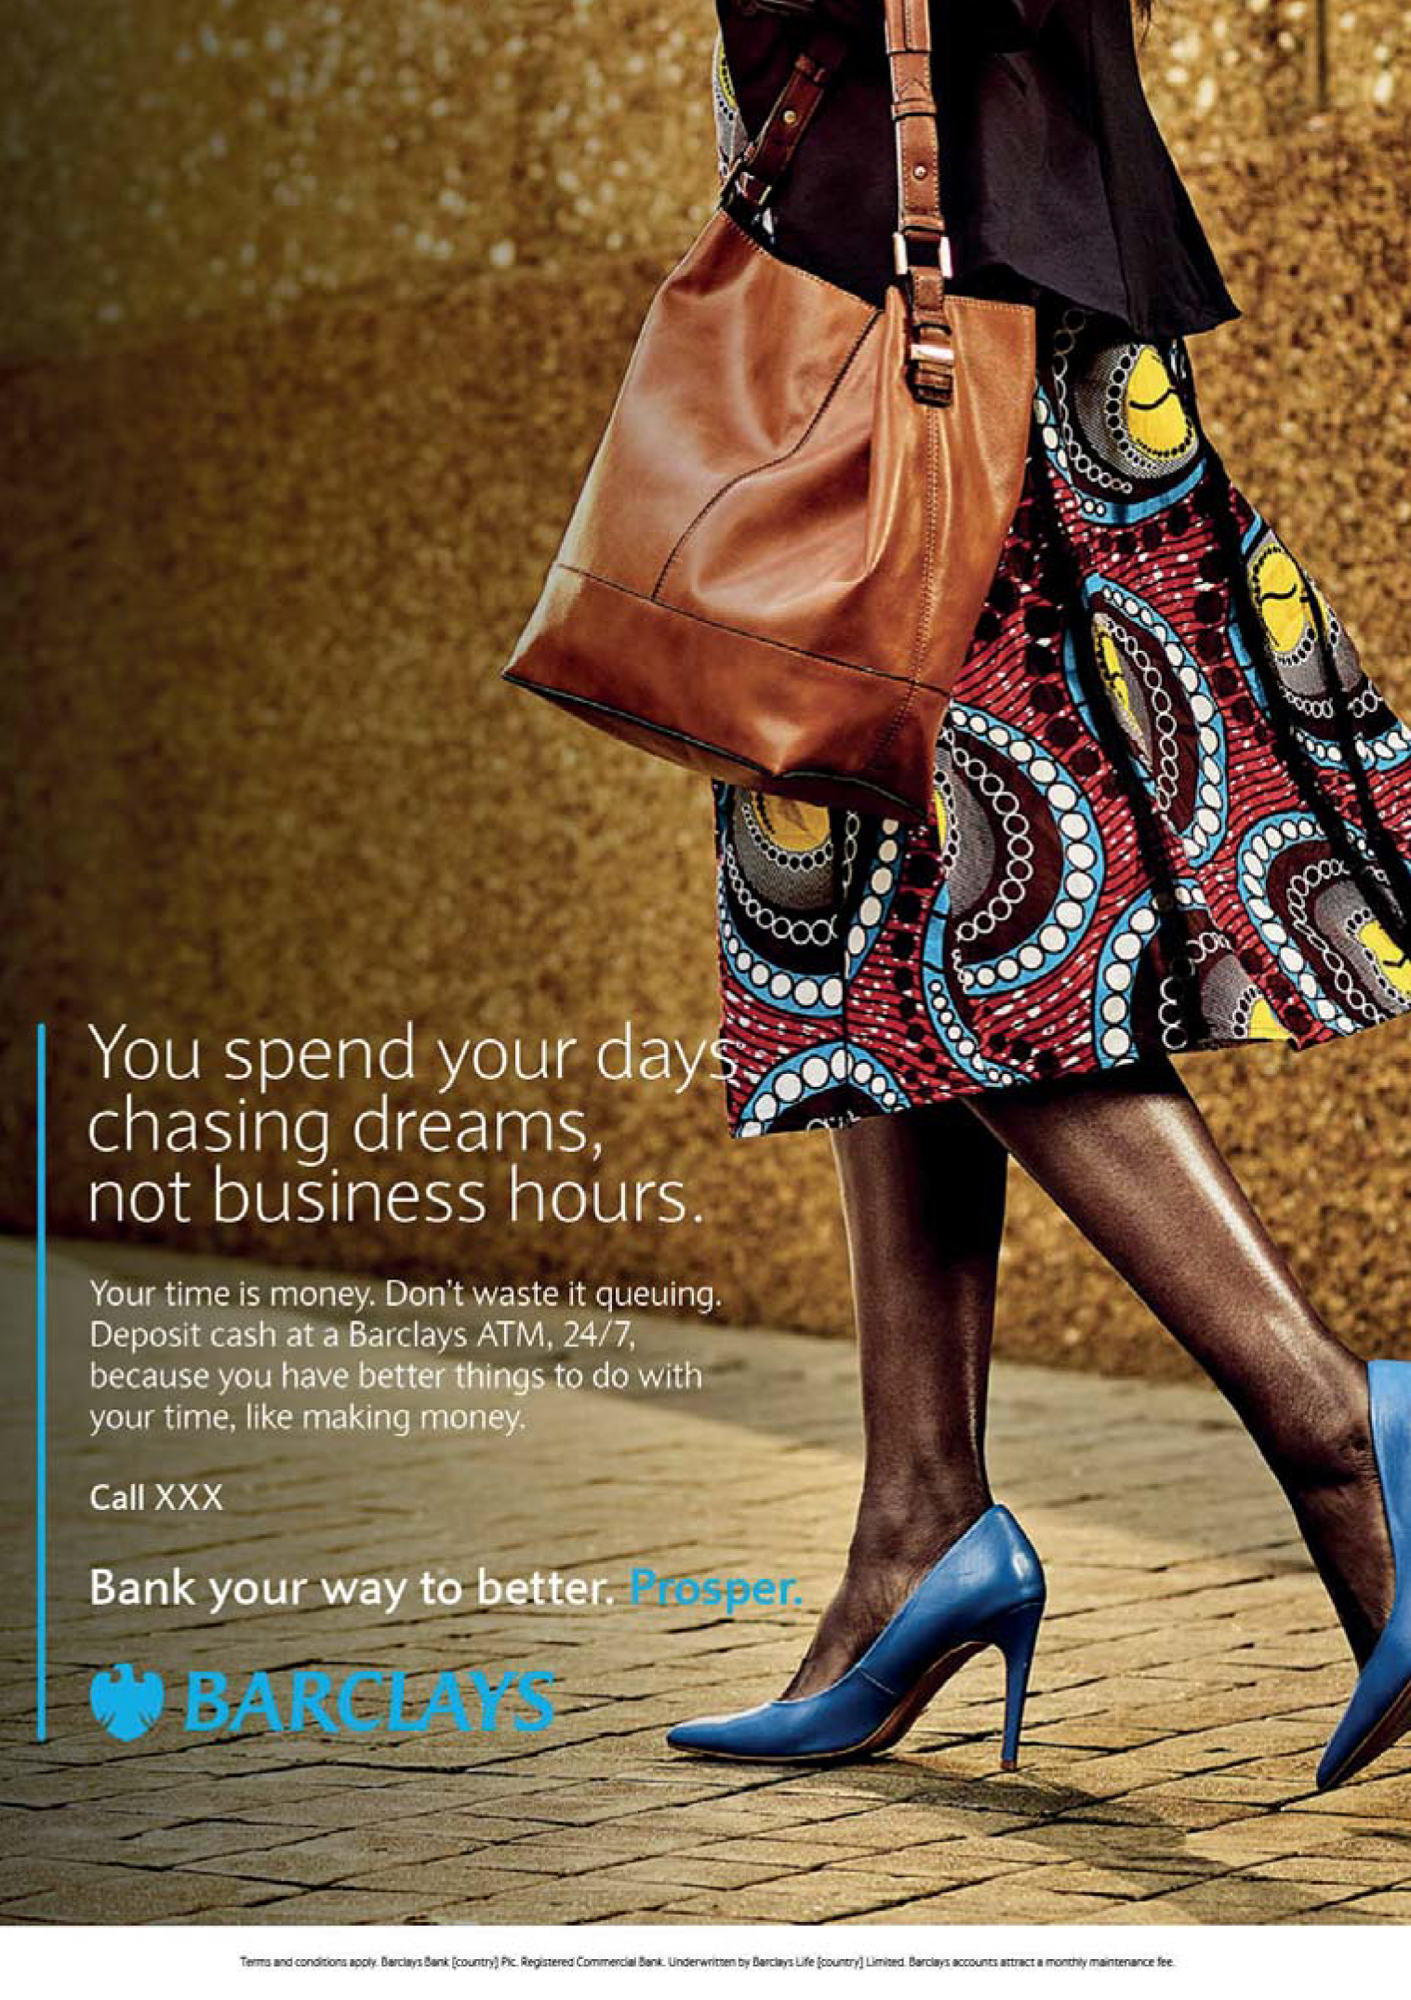 Barclays Personal Banking Campaign Toolkit 26 APRIL-99.jpg